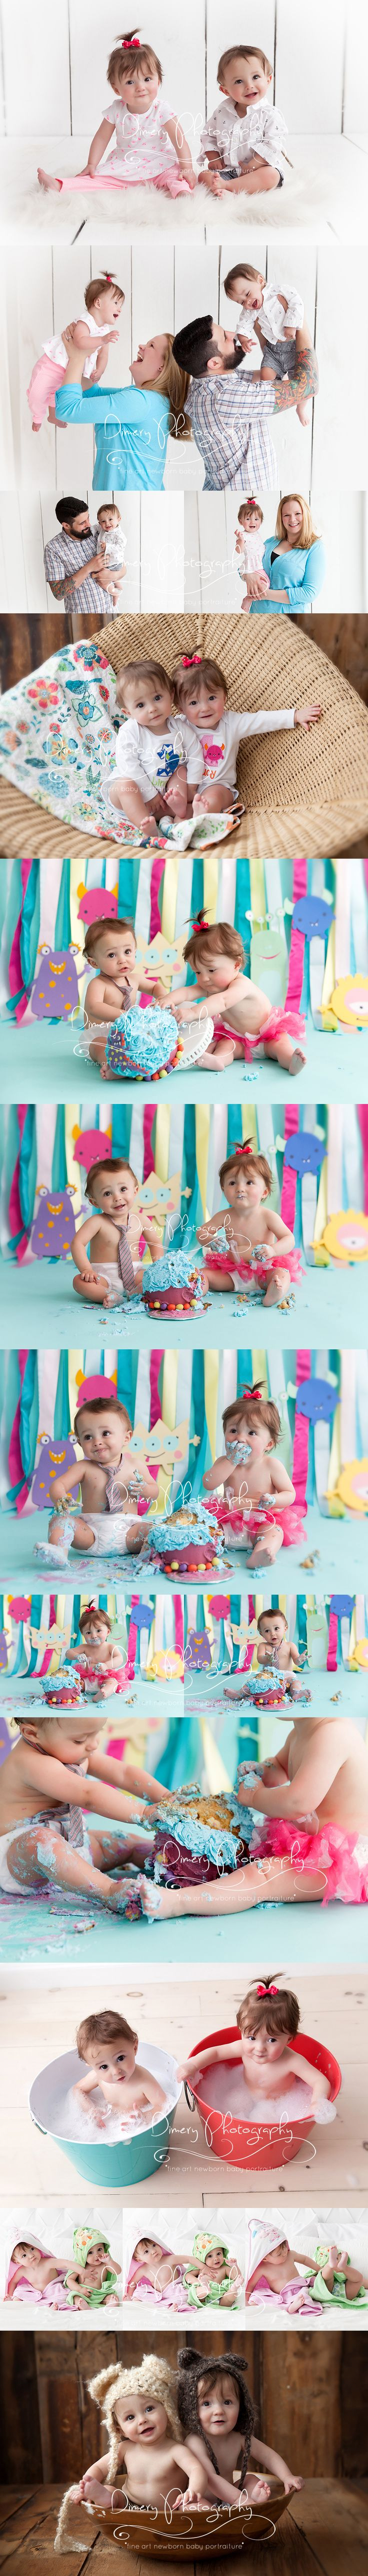 twins cake smash, first birthday cake smash photos, monster cakesmash, one year old twins, natural light baby photography, twin pose ideas, babies in bear hats, multiples ©Dimery Photography 2015